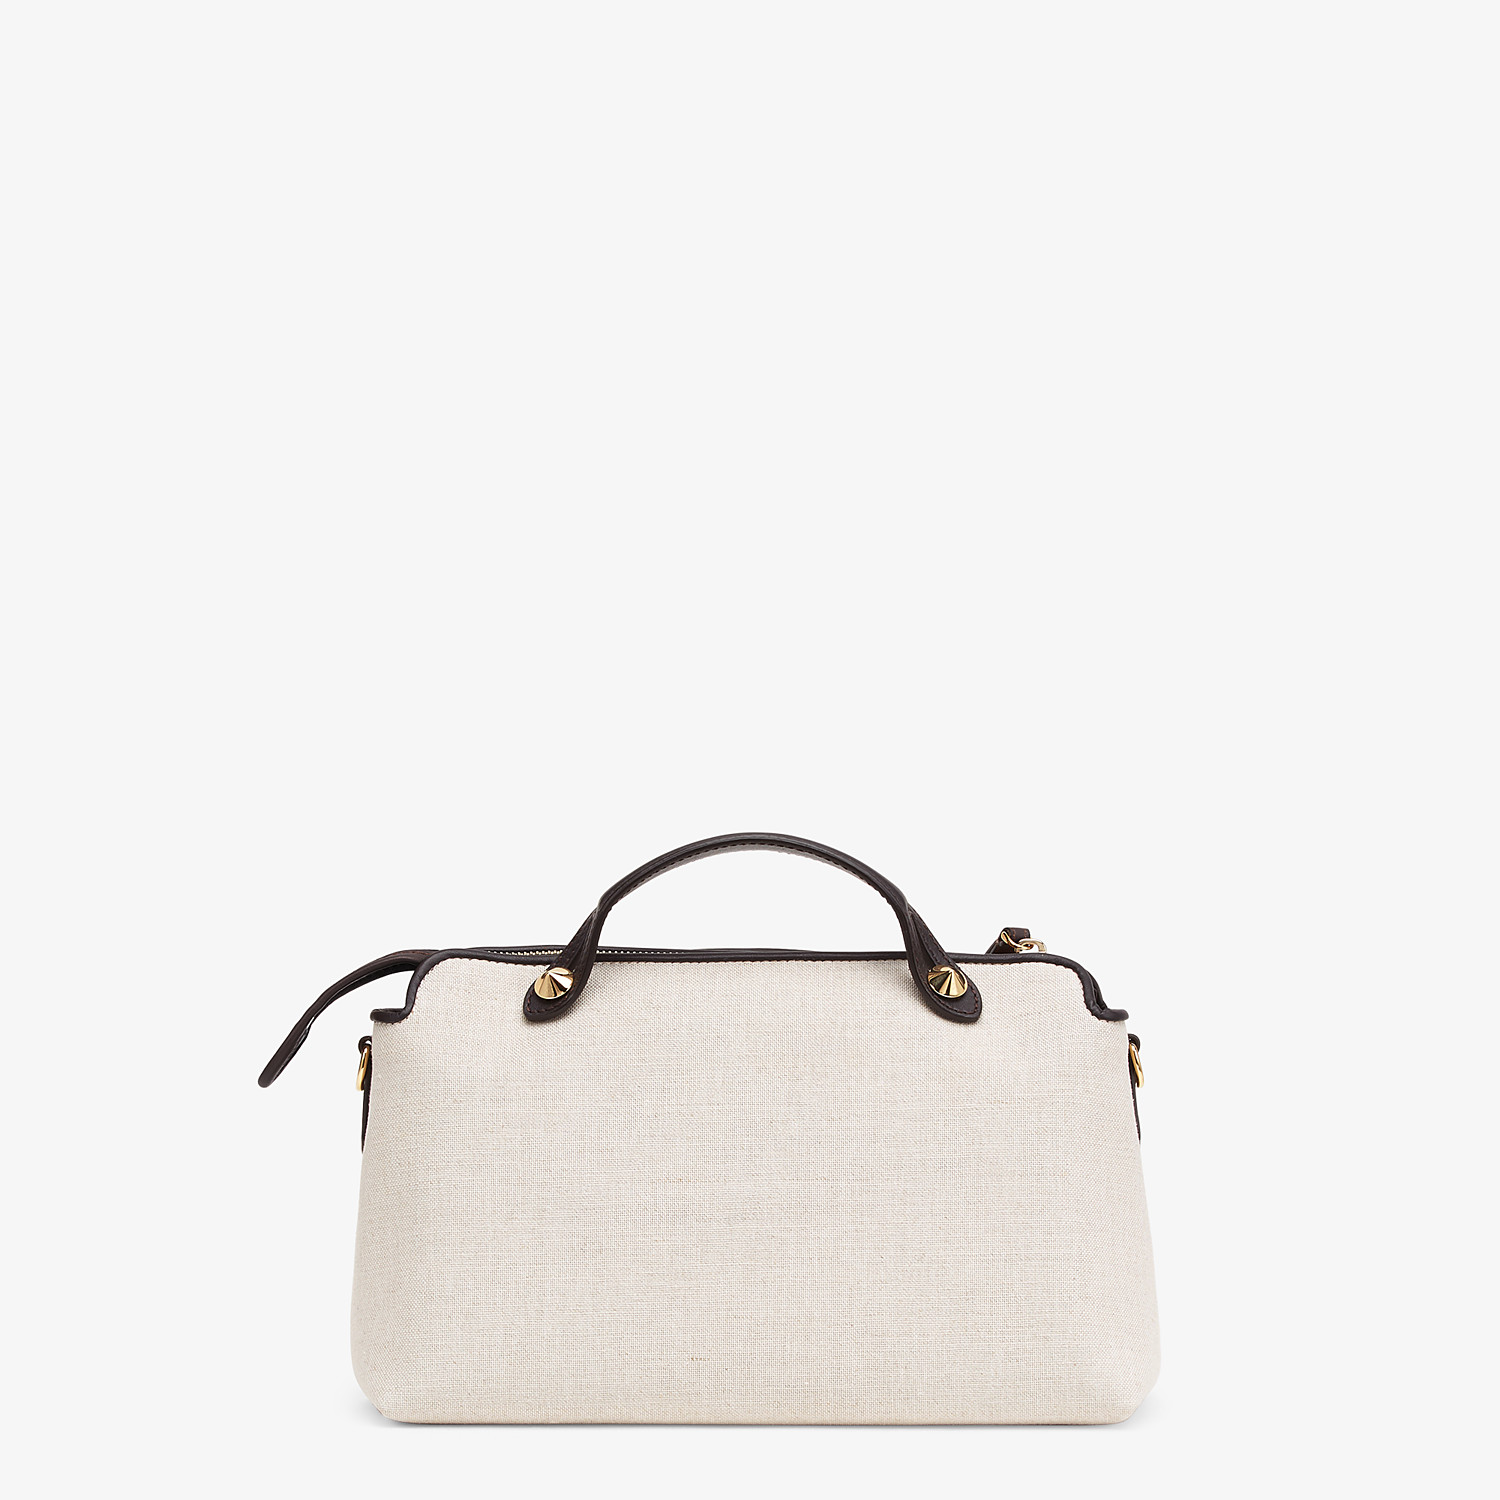 FENDI BY THE WAY MEDIUM - Beige canvas Boston bag - view 3 detail